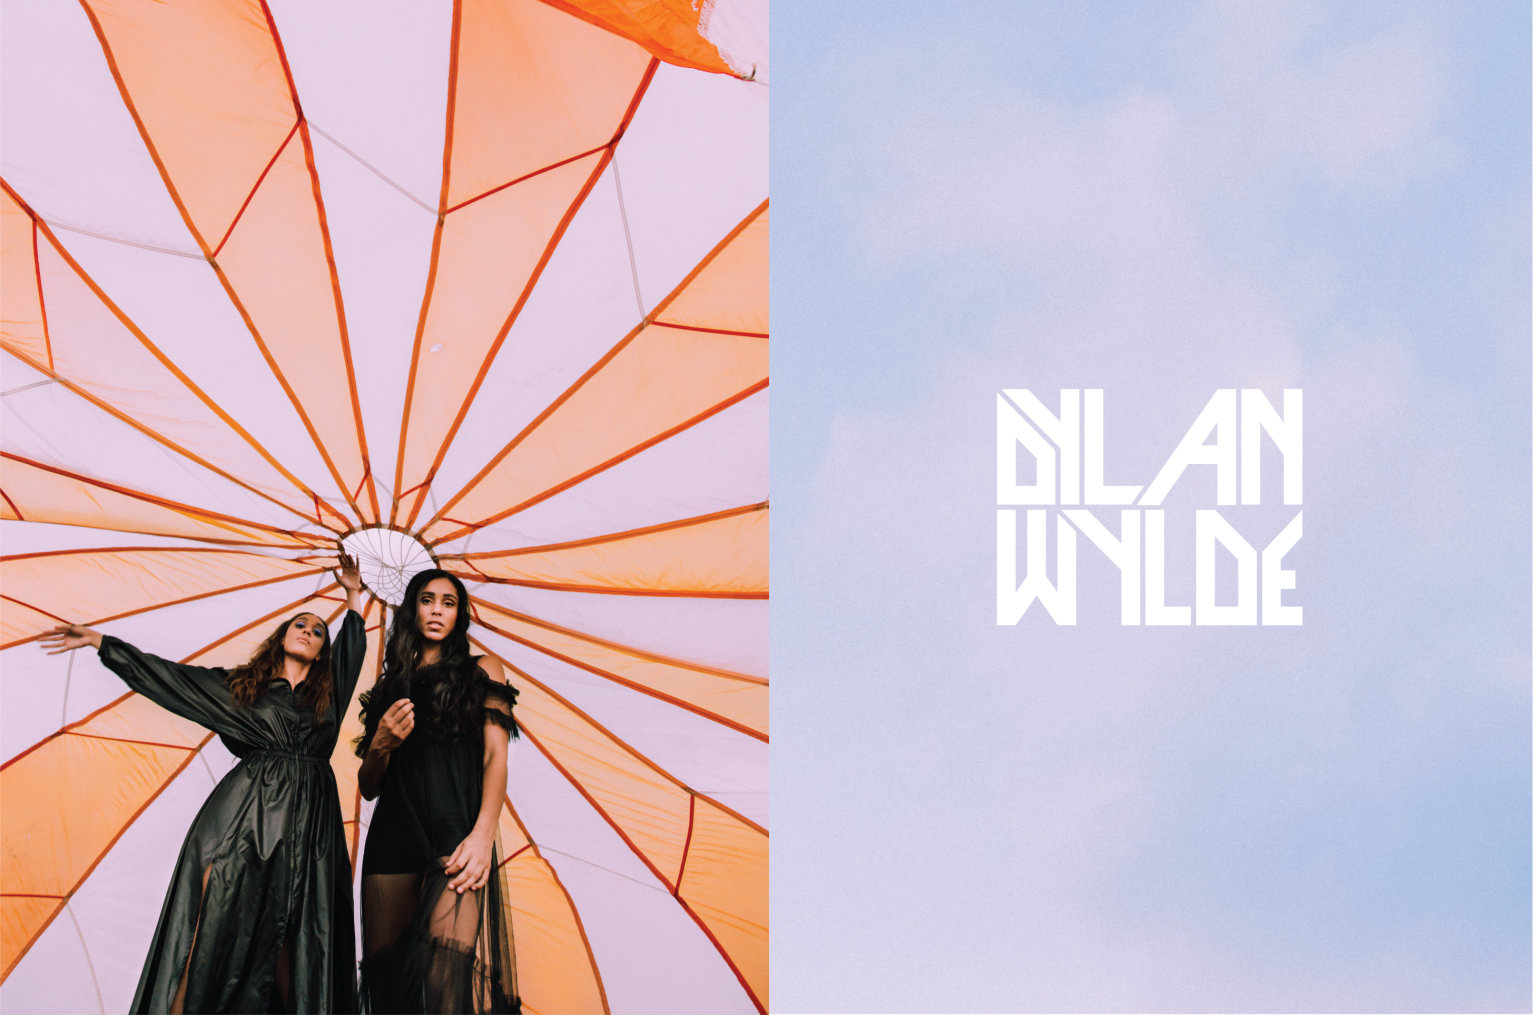 Dylan Wylde Rebrand and Social Content